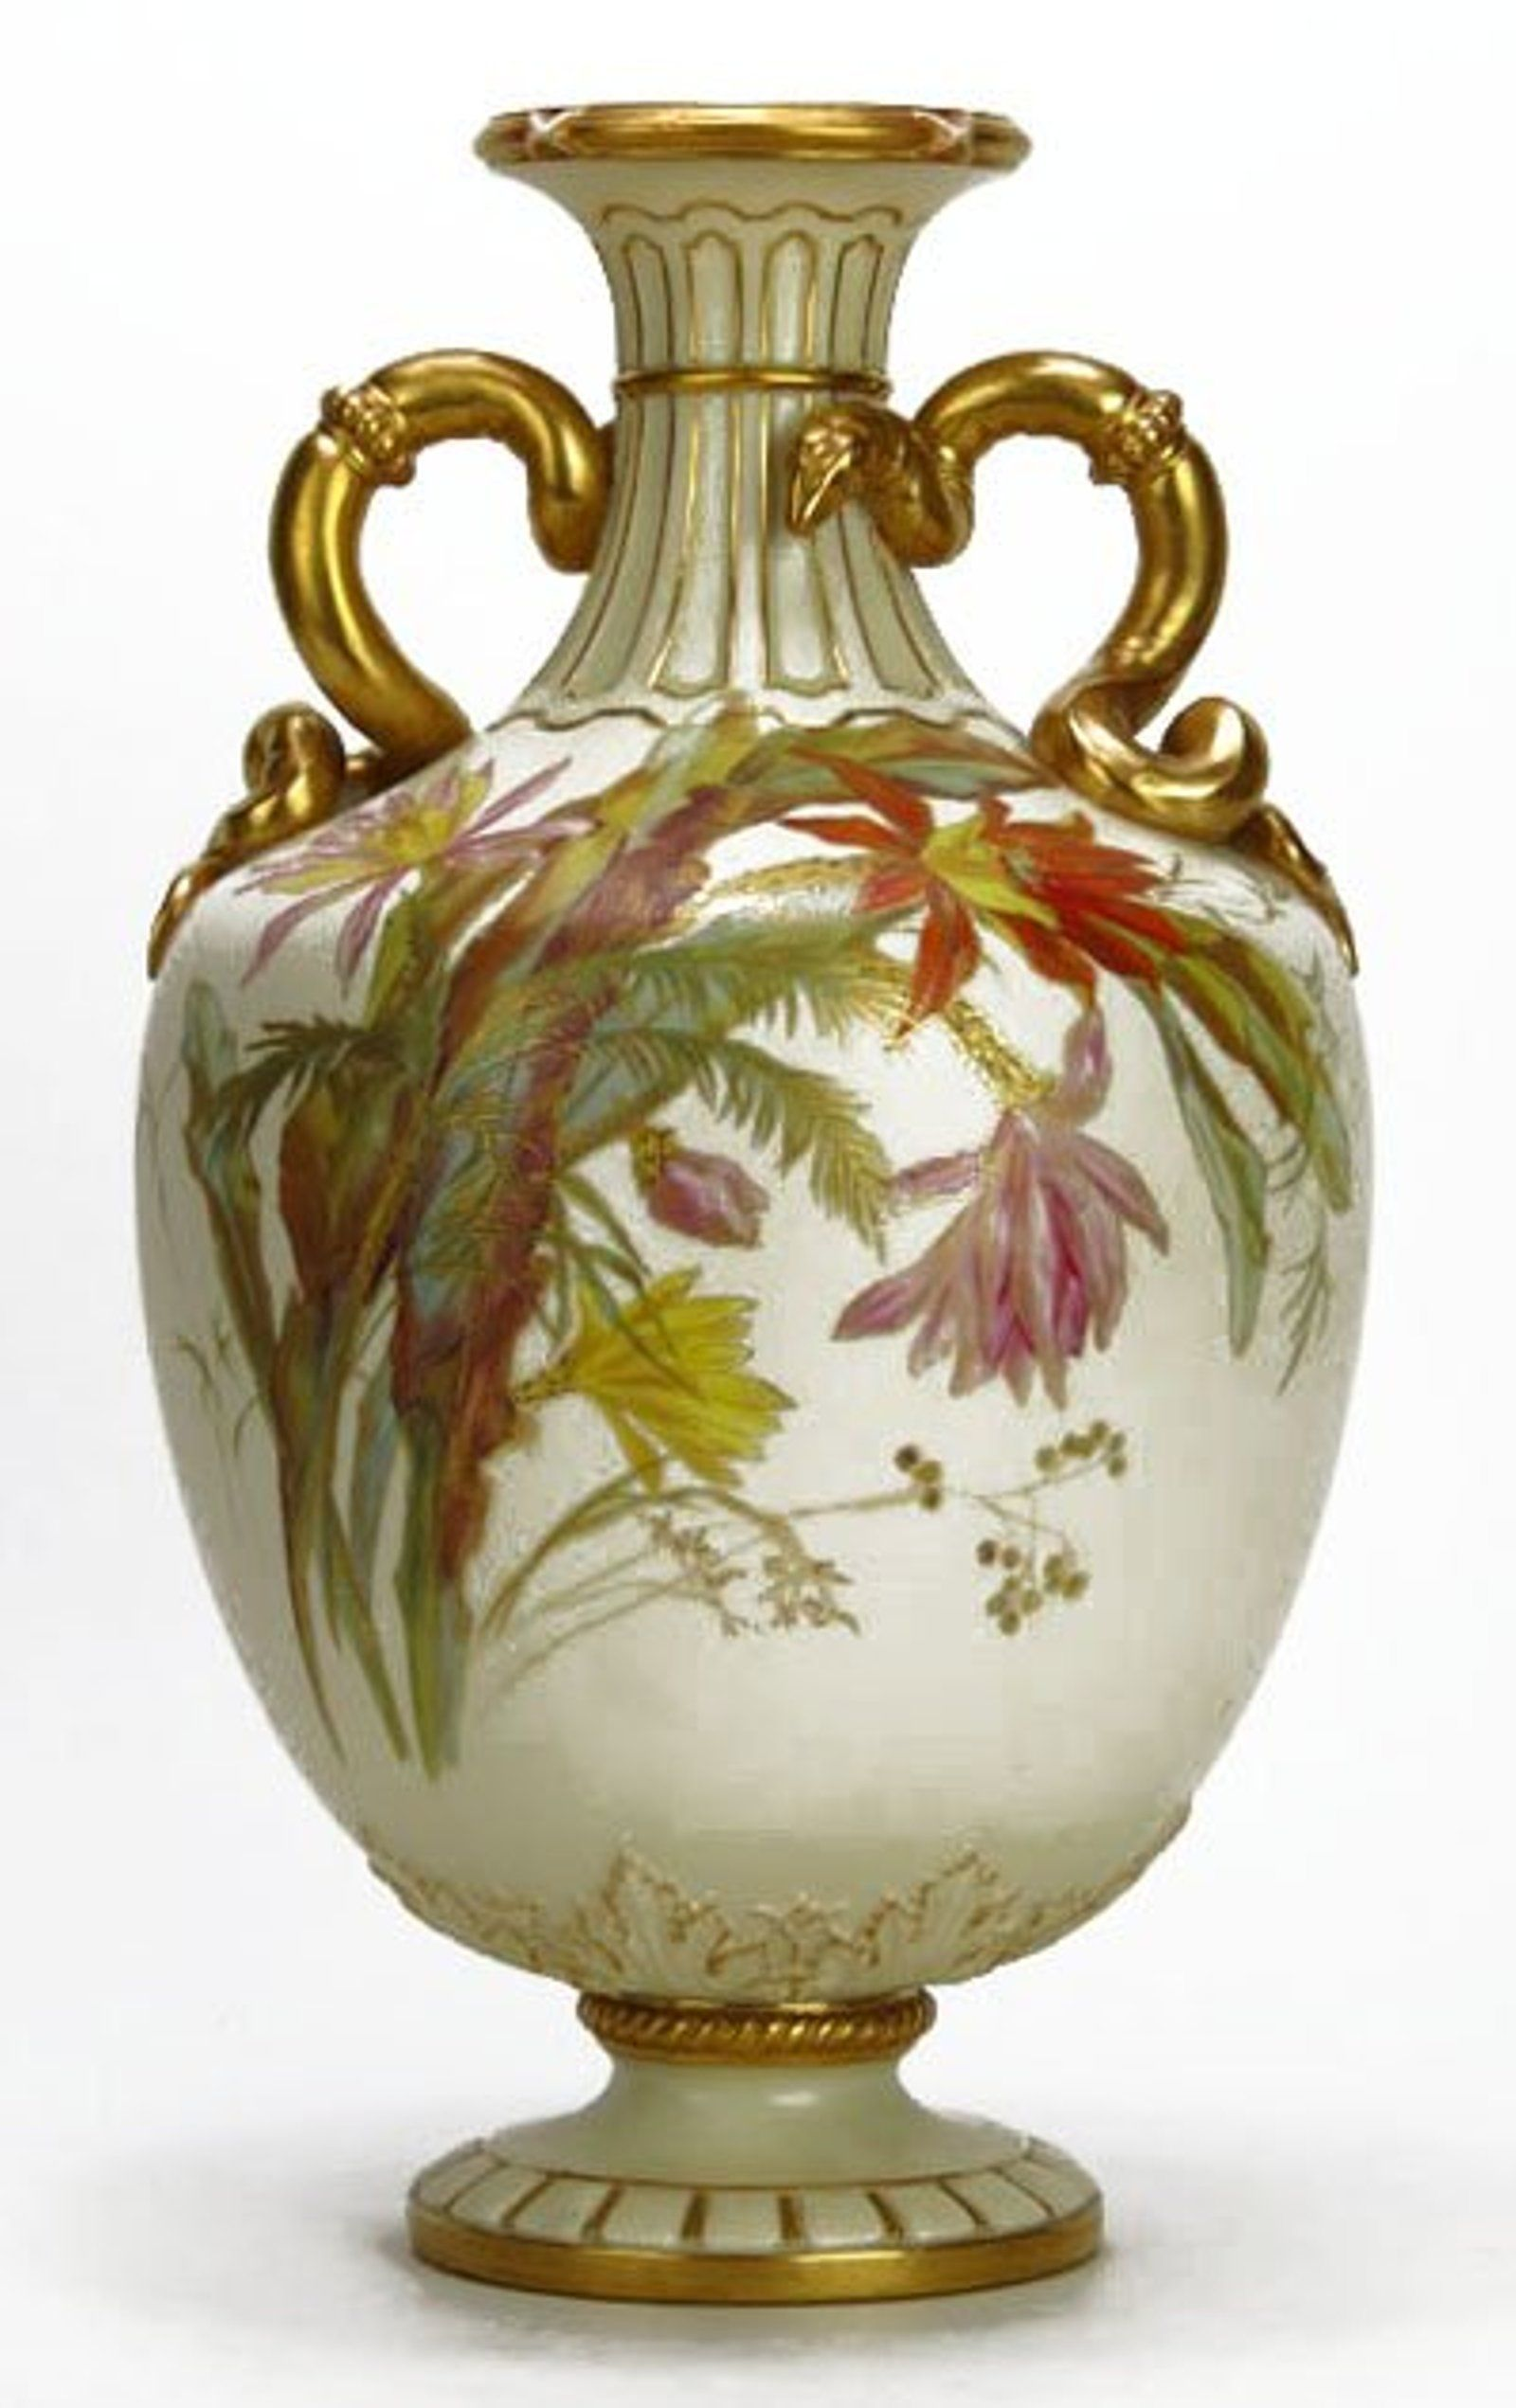 Large Decorative Urns With Lids Glamorous Antique Large And Important Royal Worcester Vase With S  I Love 2018